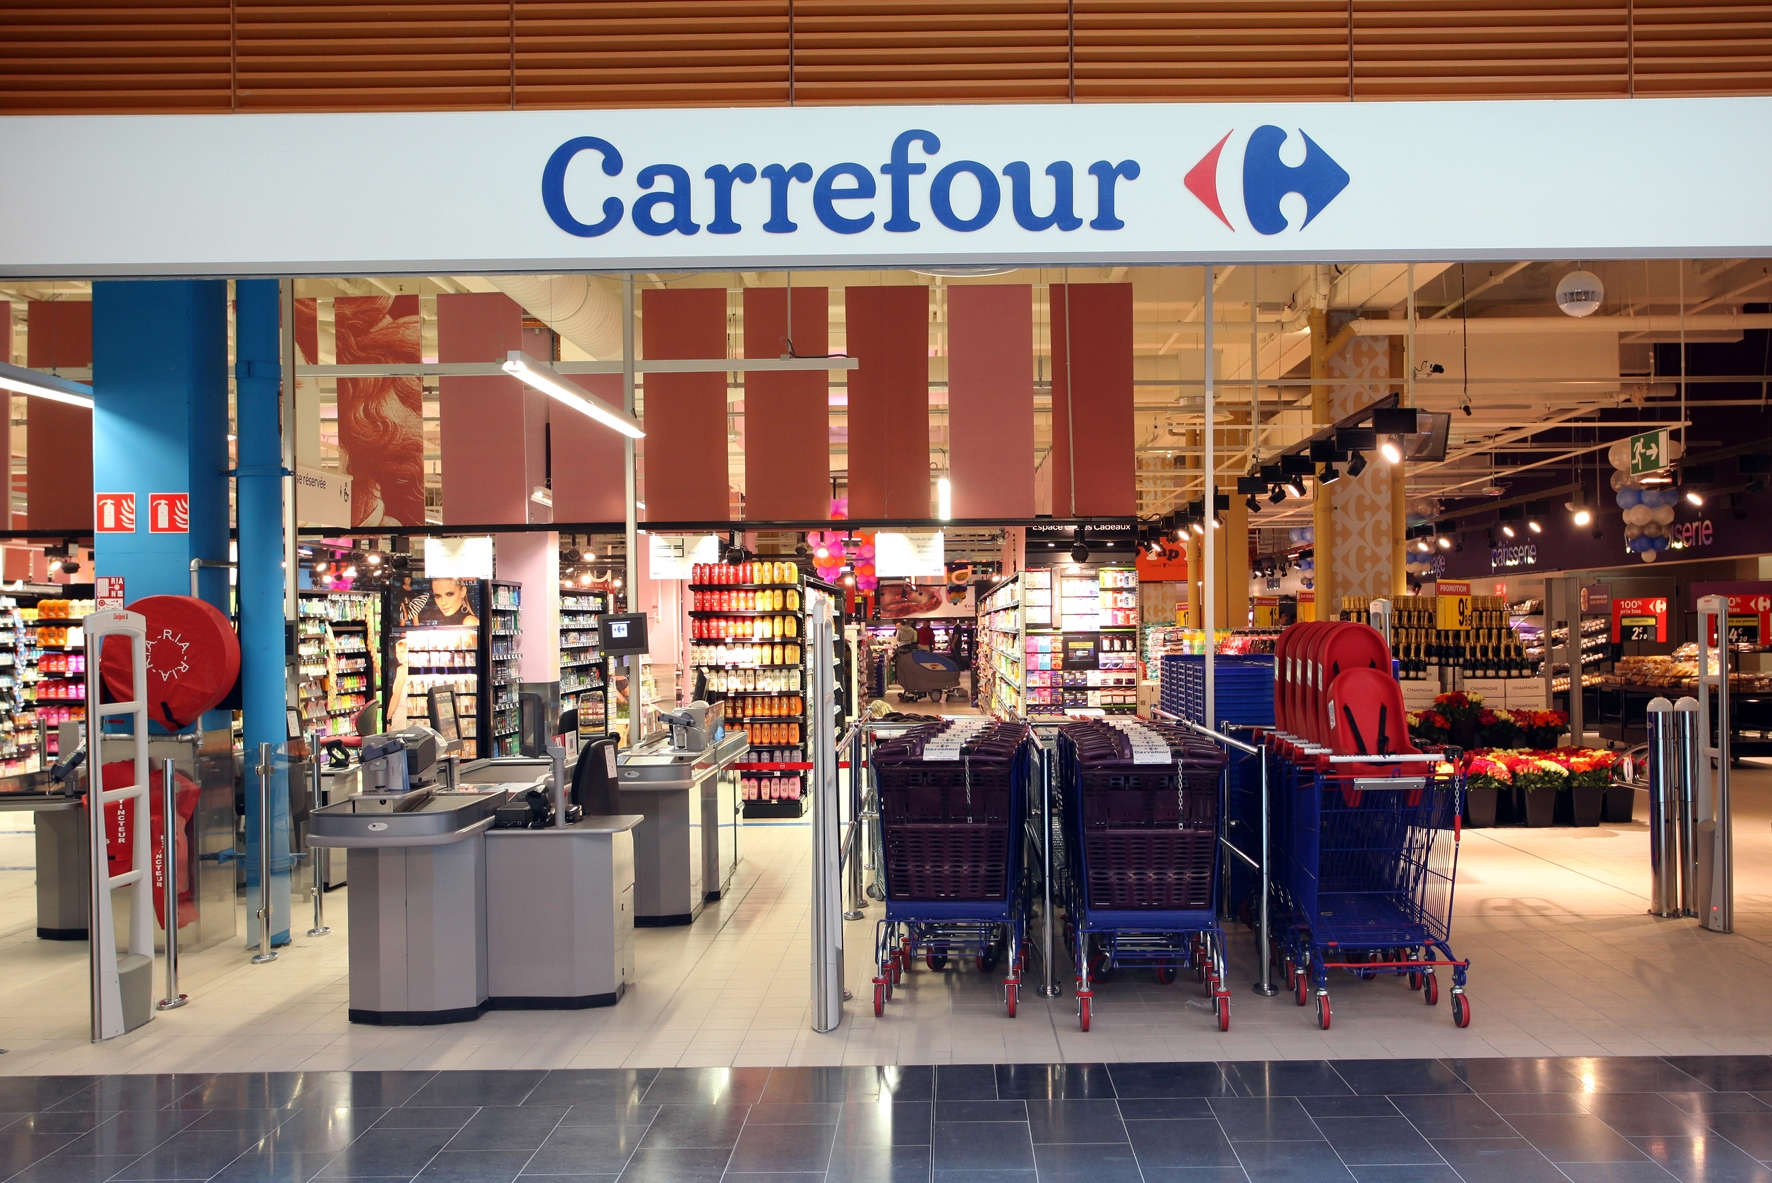 Carrefour news